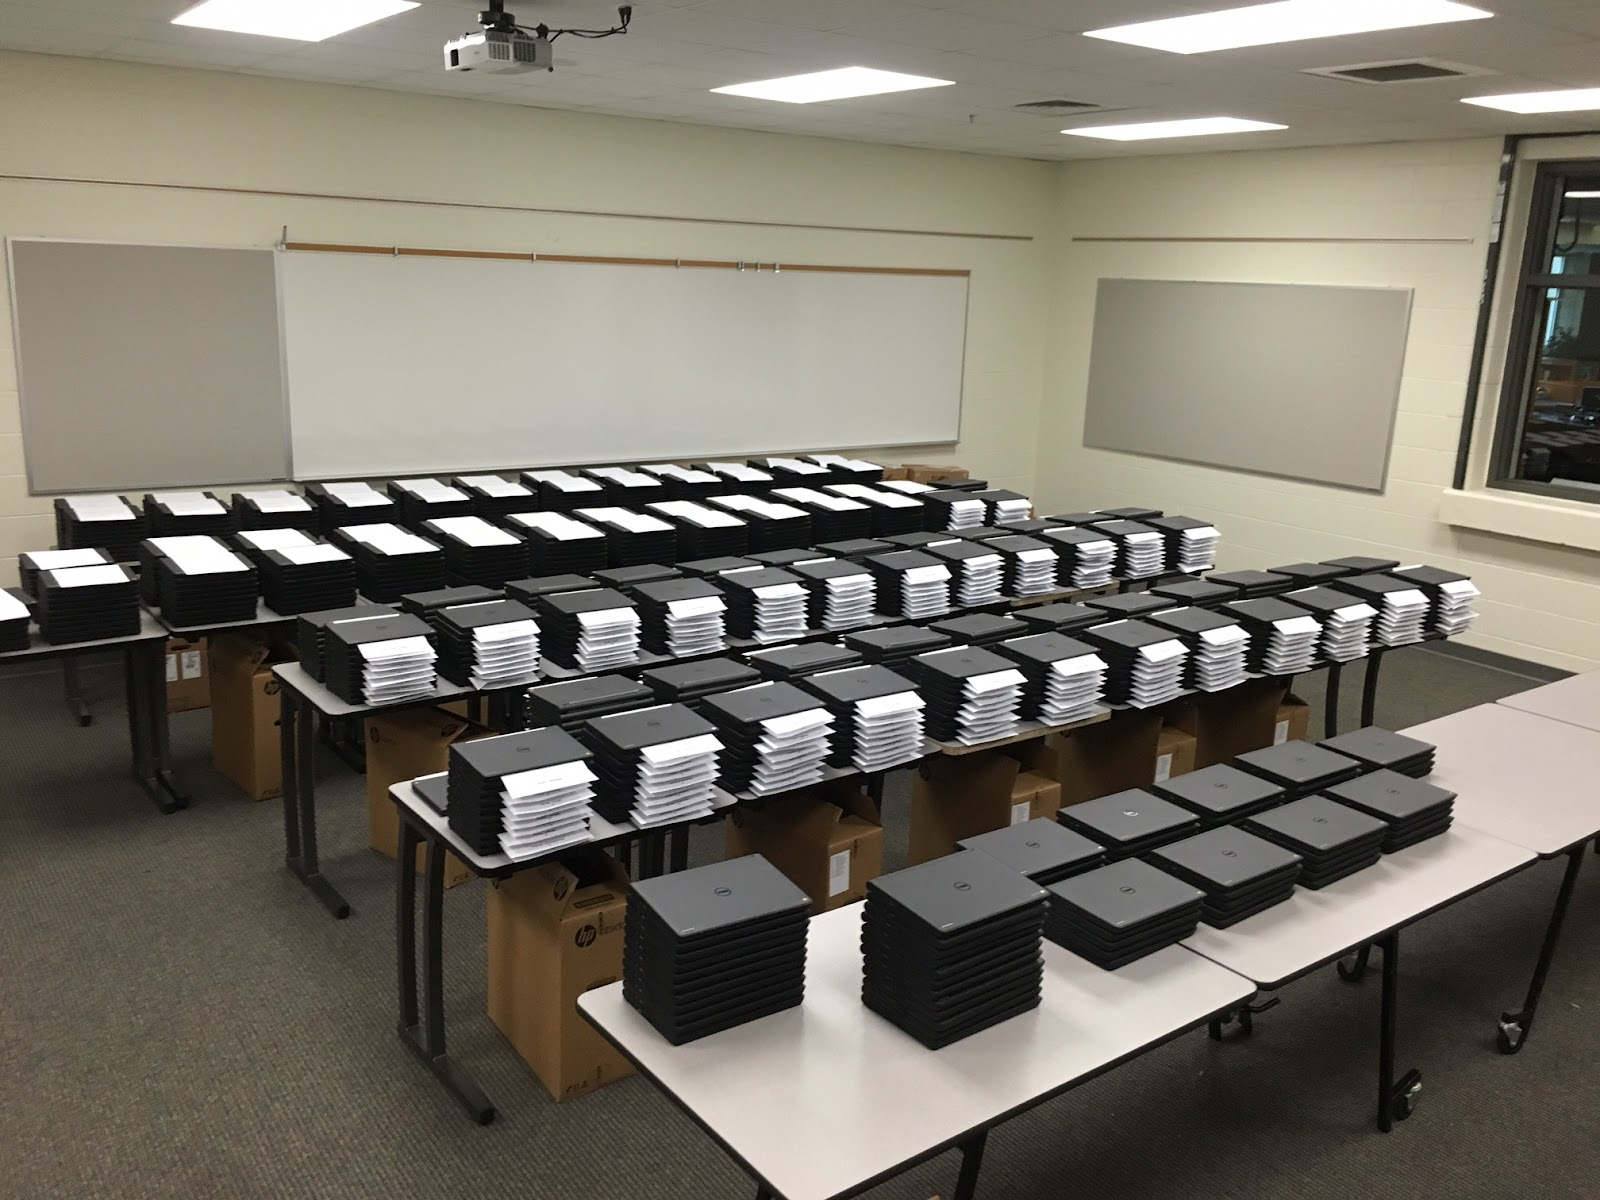 1,050 Chromebooks waiting for distribution